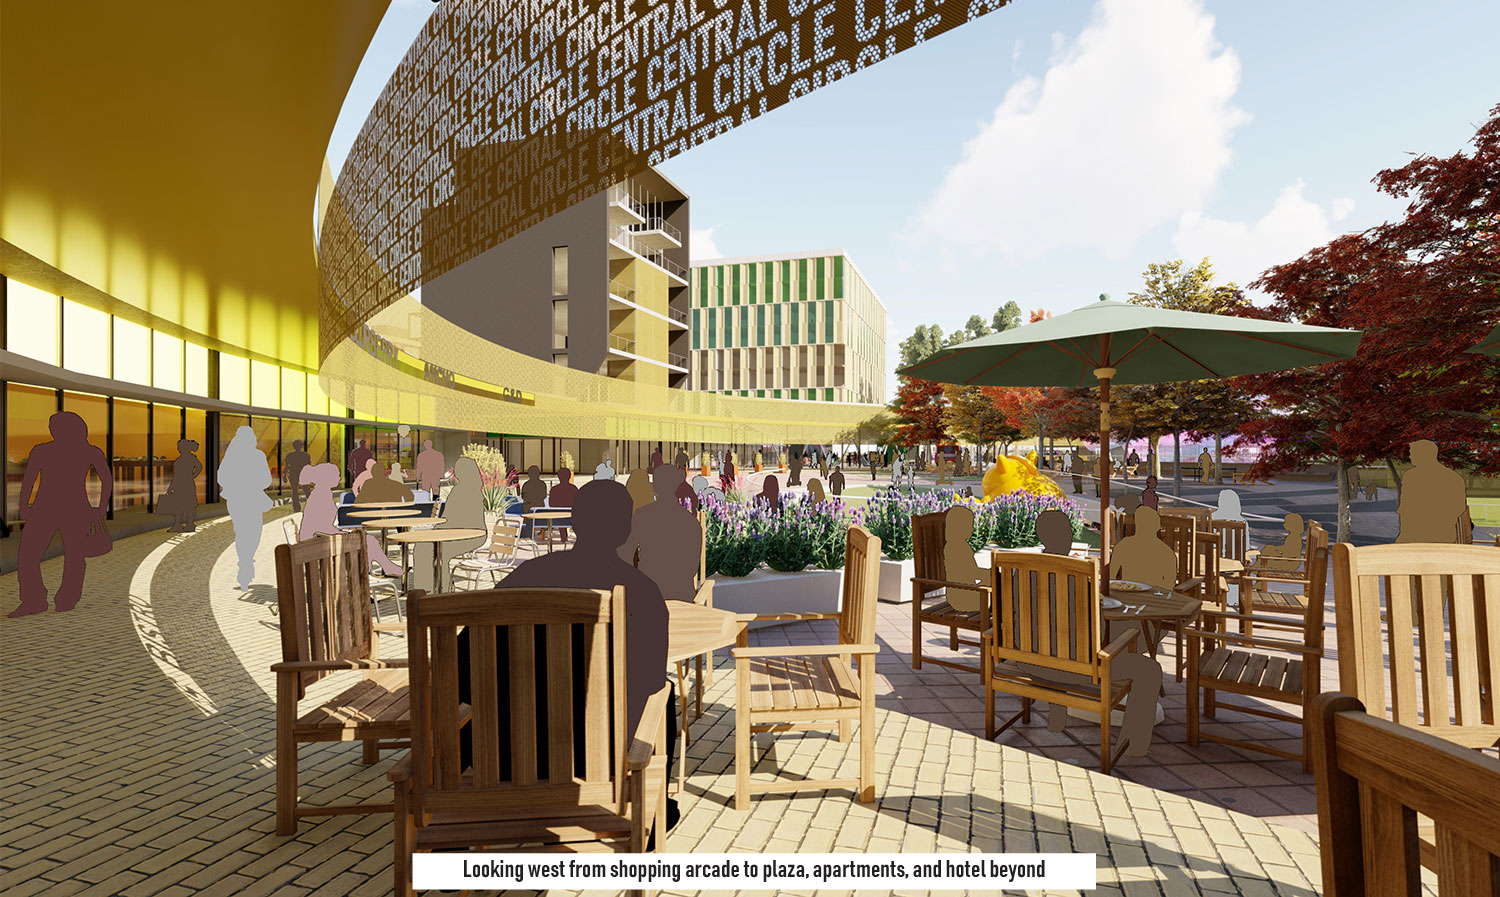 Cafes and restaurant seating spills out from the interior of The Circle onto the plaza. University of Arkansas Community Design Center}